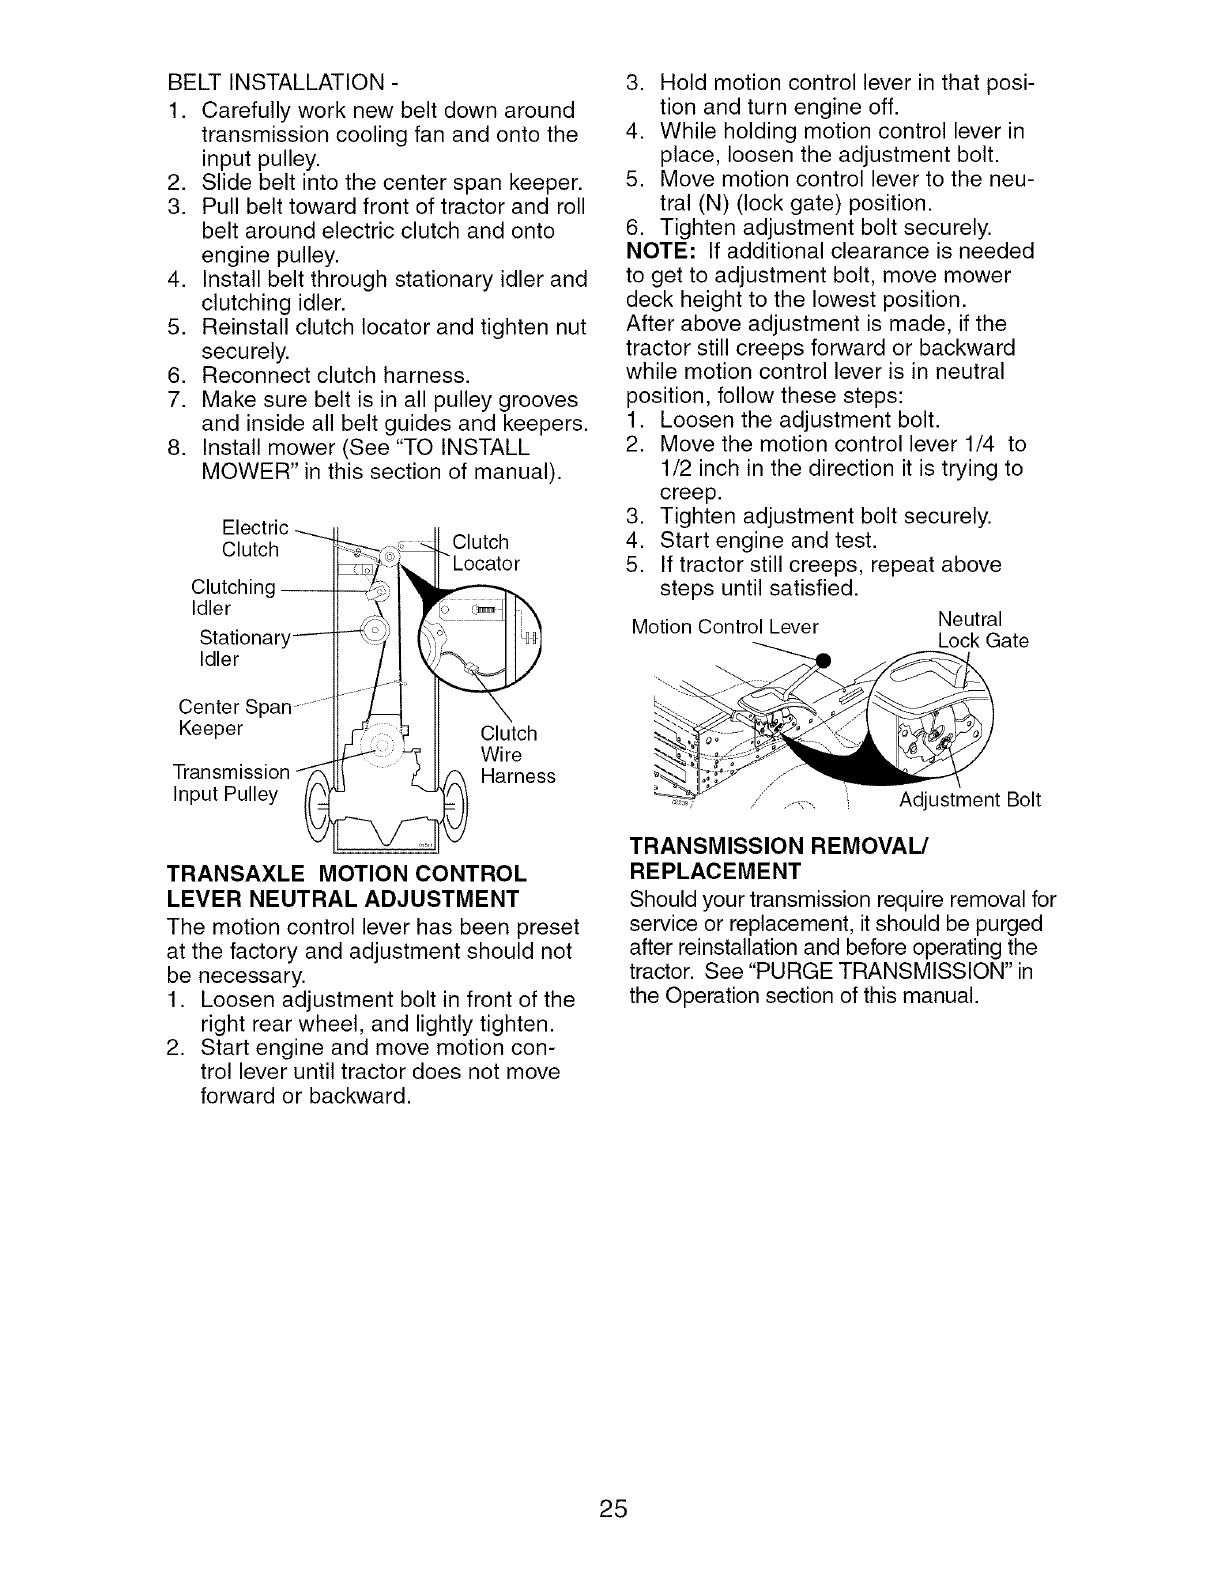 Craftsman 917275660 User Manual Tractor Manuals And Guides L0501293 Helical Wire Harness Lay Belt Installation